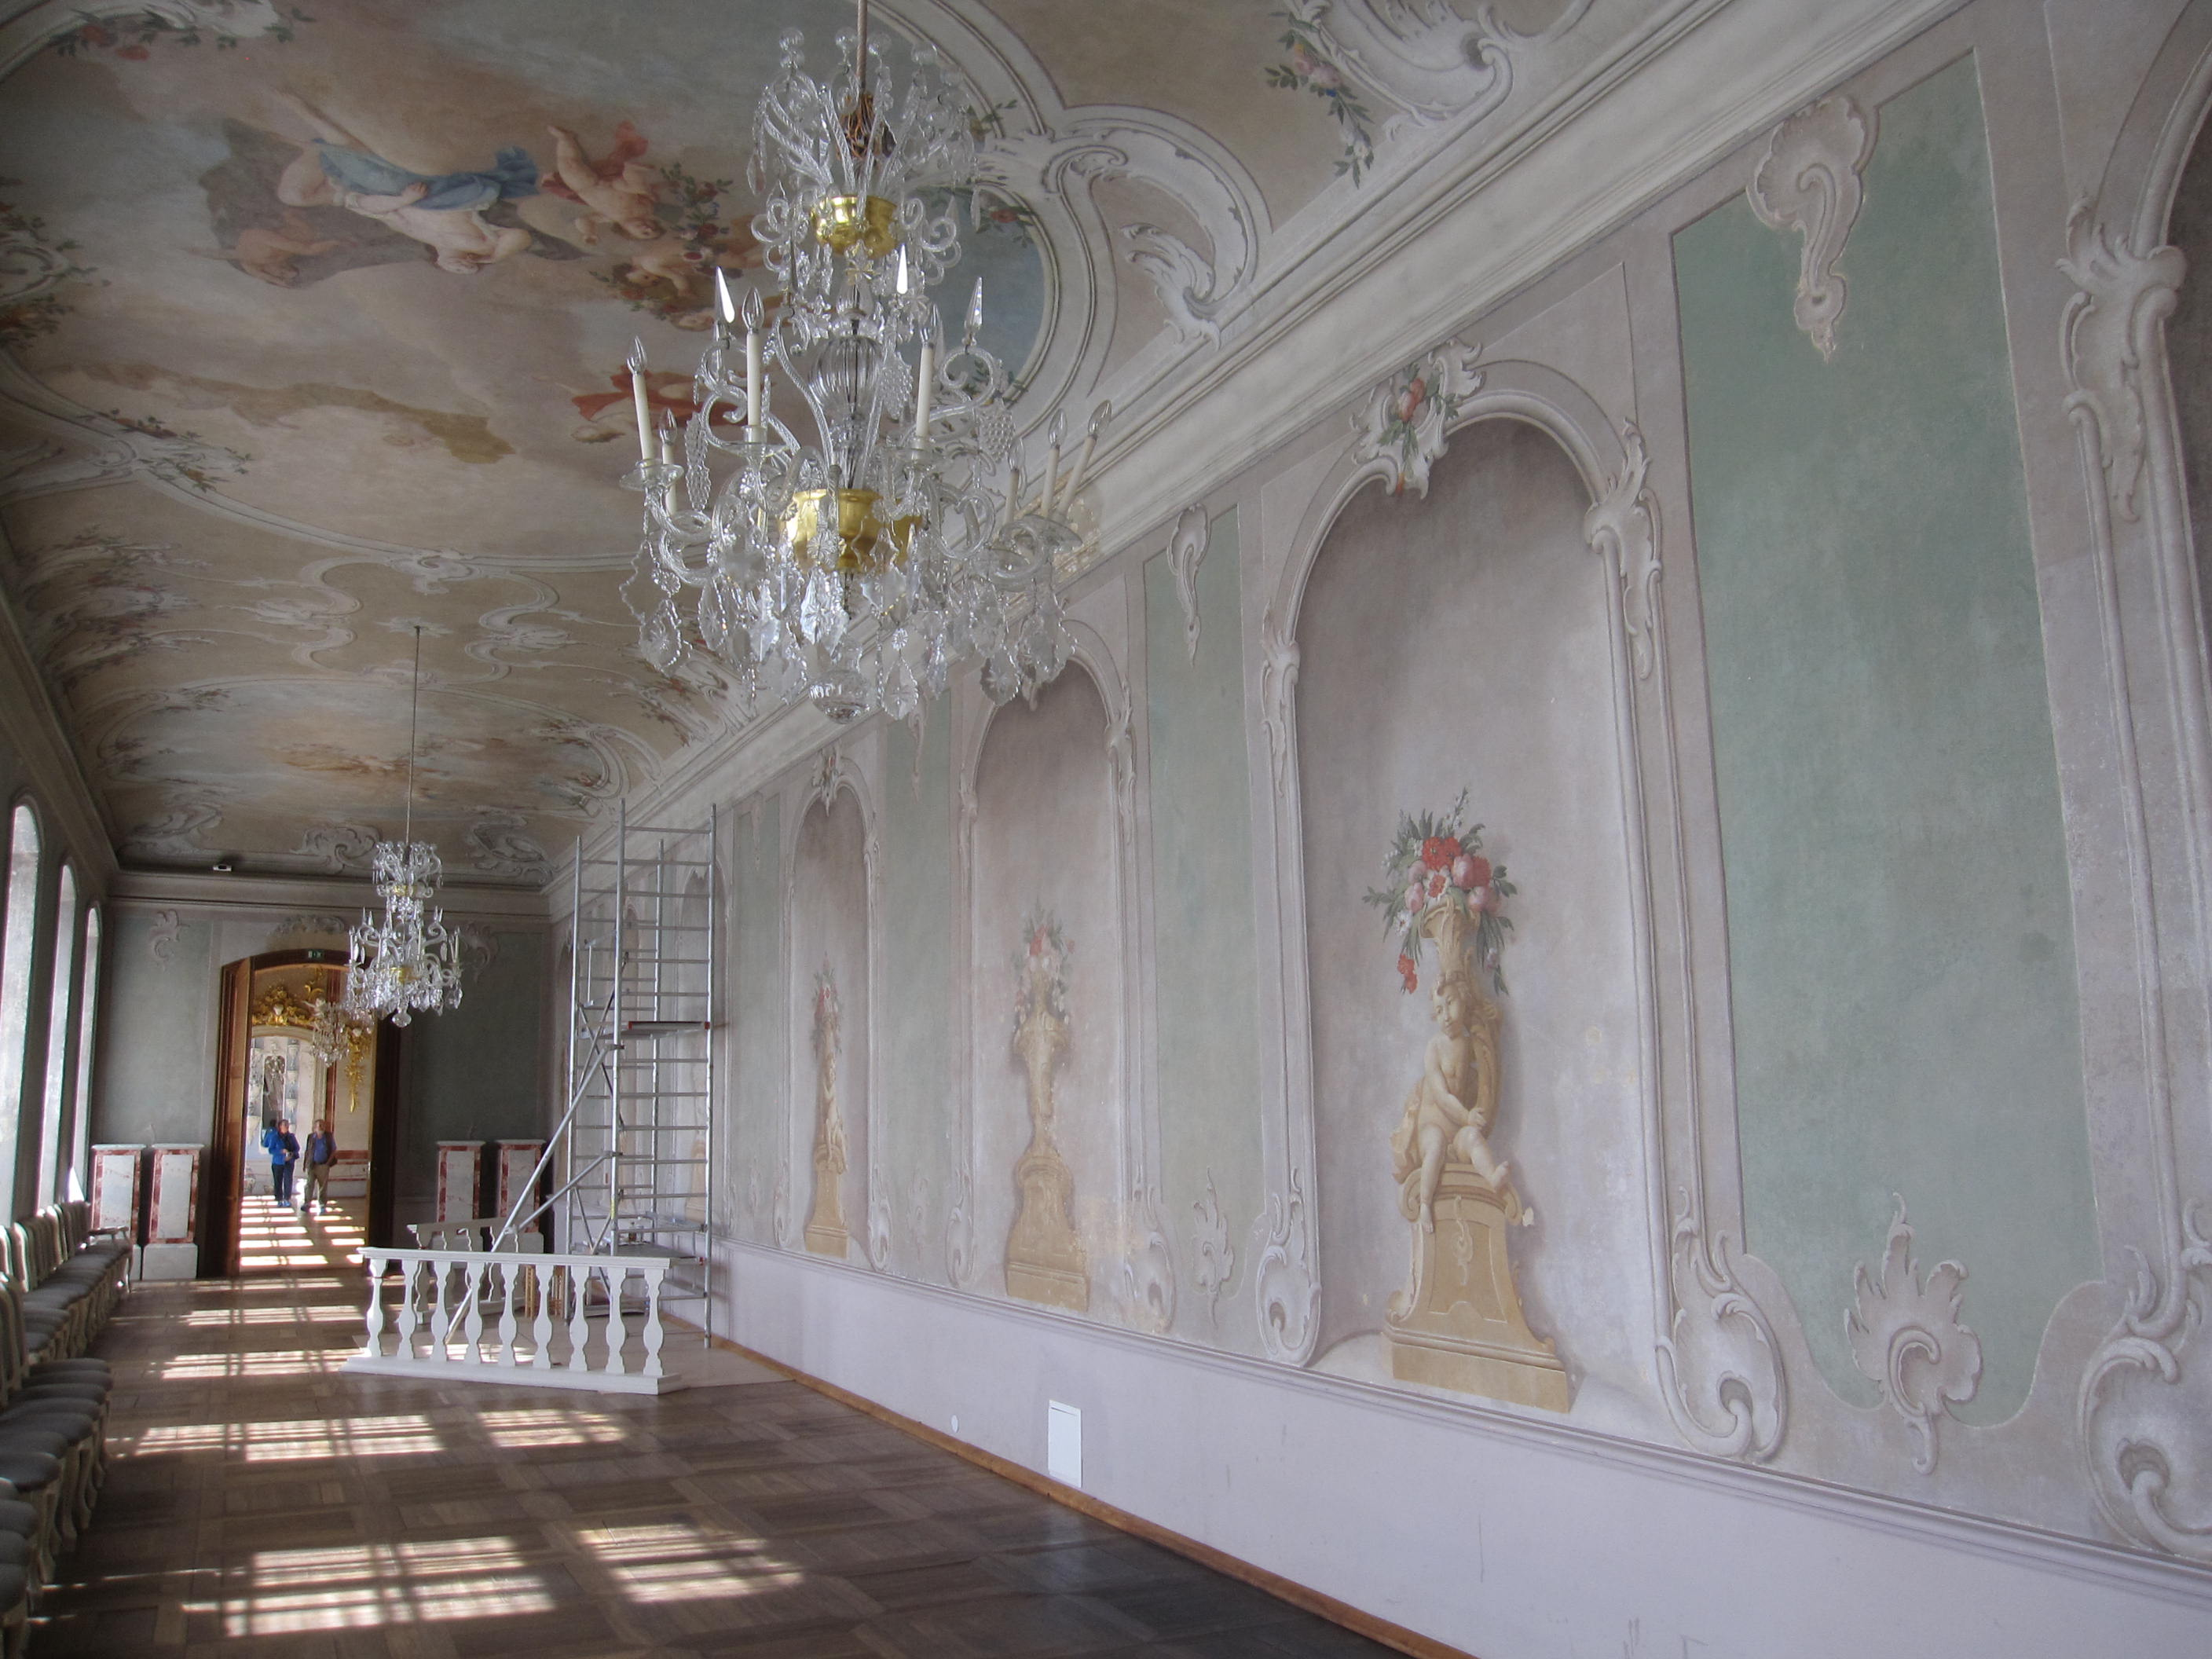 FileRundale palace interior decorated wallsjpg